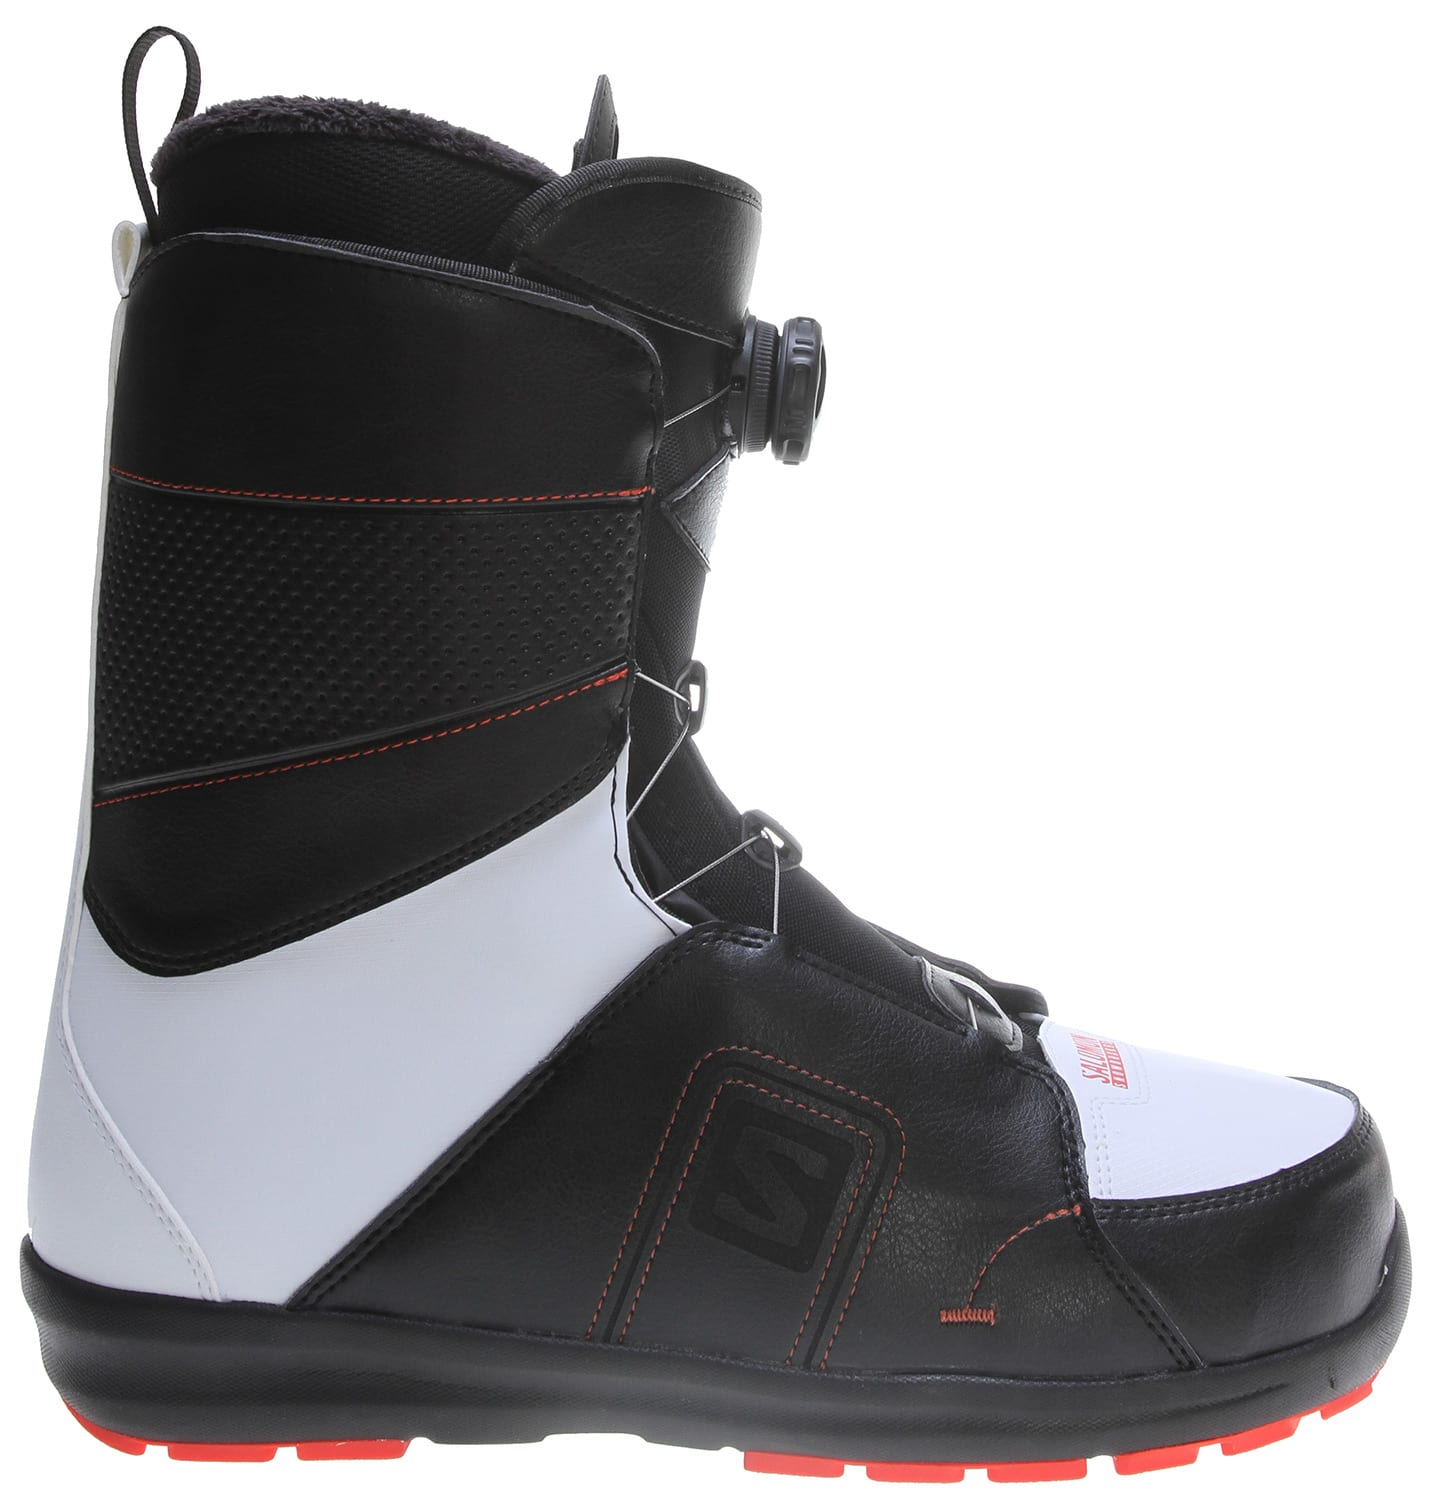 on sale salomon faction boa snowboard boots up to 55 off. Black Bedroom Furniture Sets. Home Design Ideas